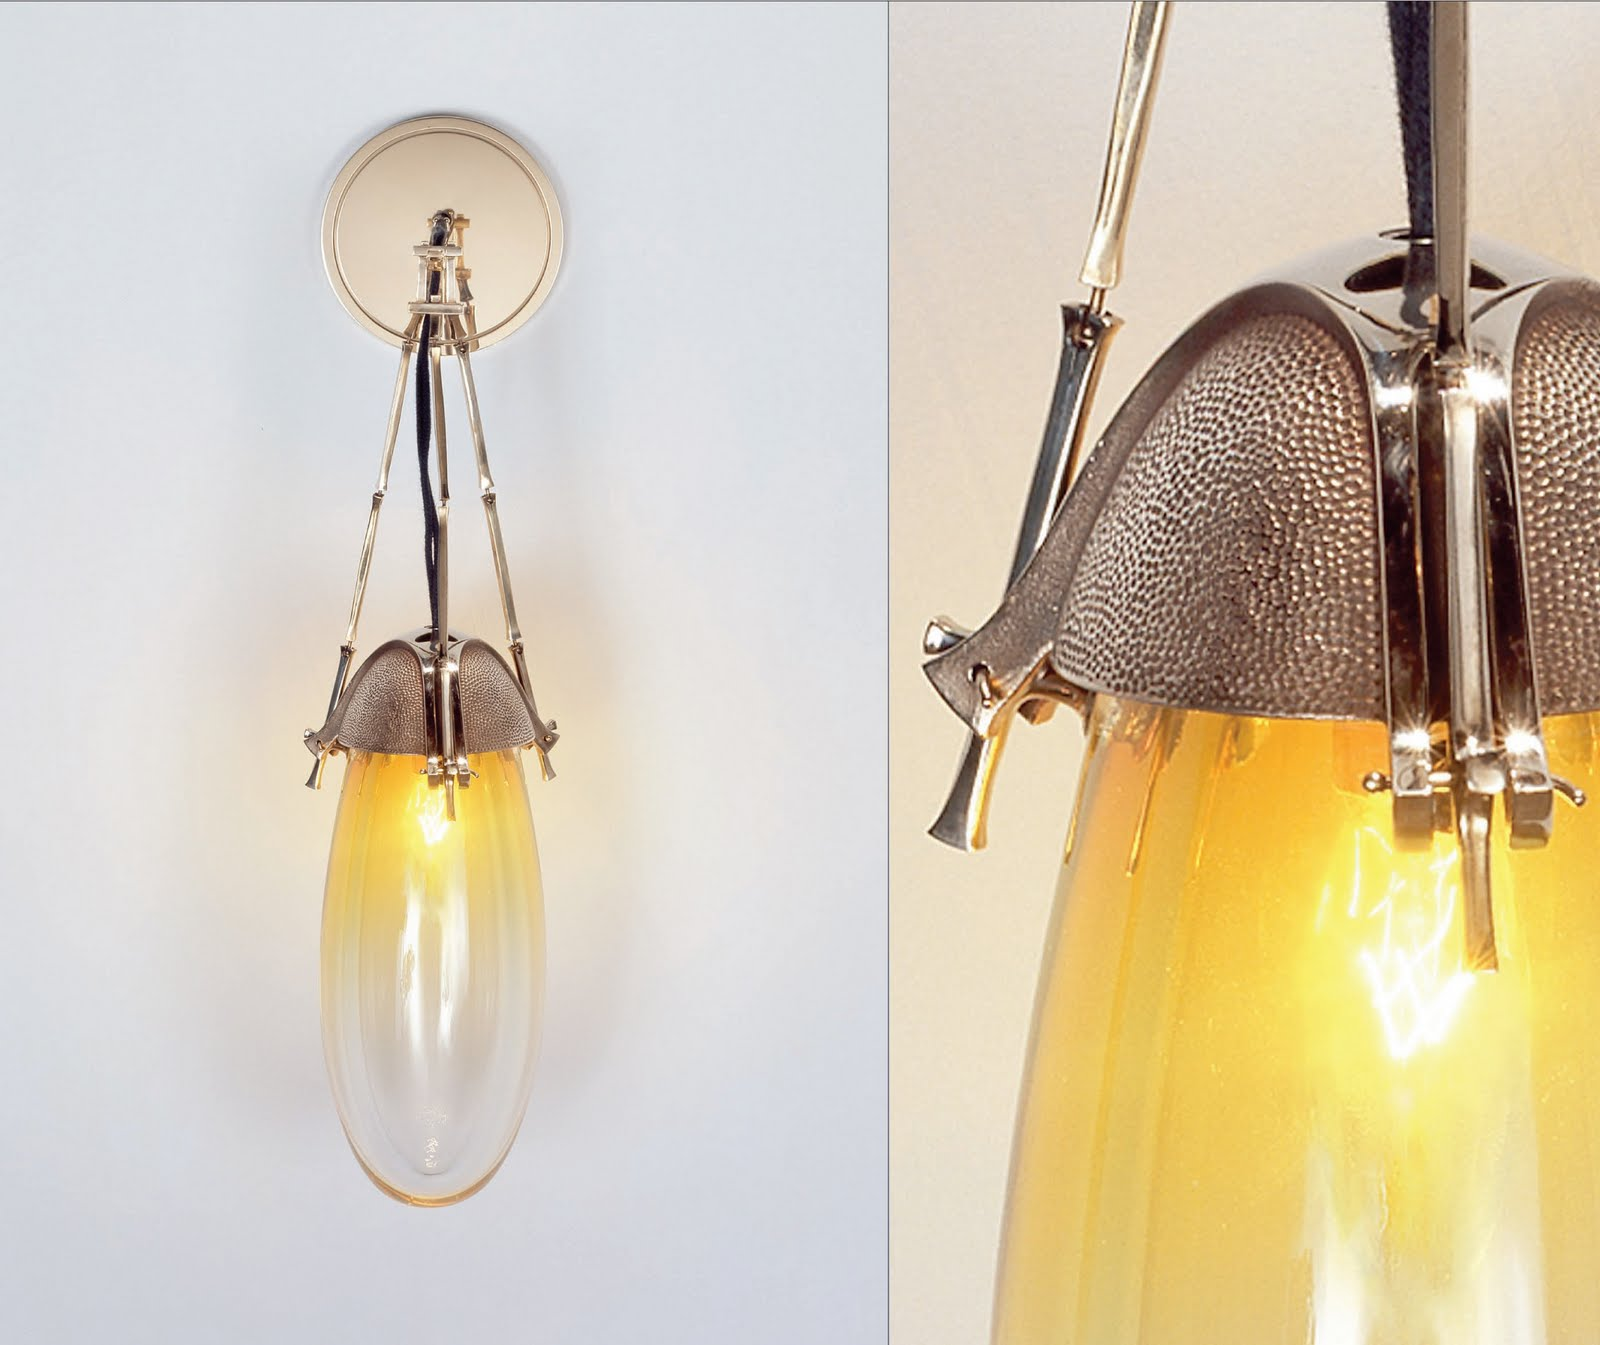 jonathan browning lighting. Jonathan Browning Lighting. His Particuliere Sconce - I Love The Glass On This Piece. Lighting